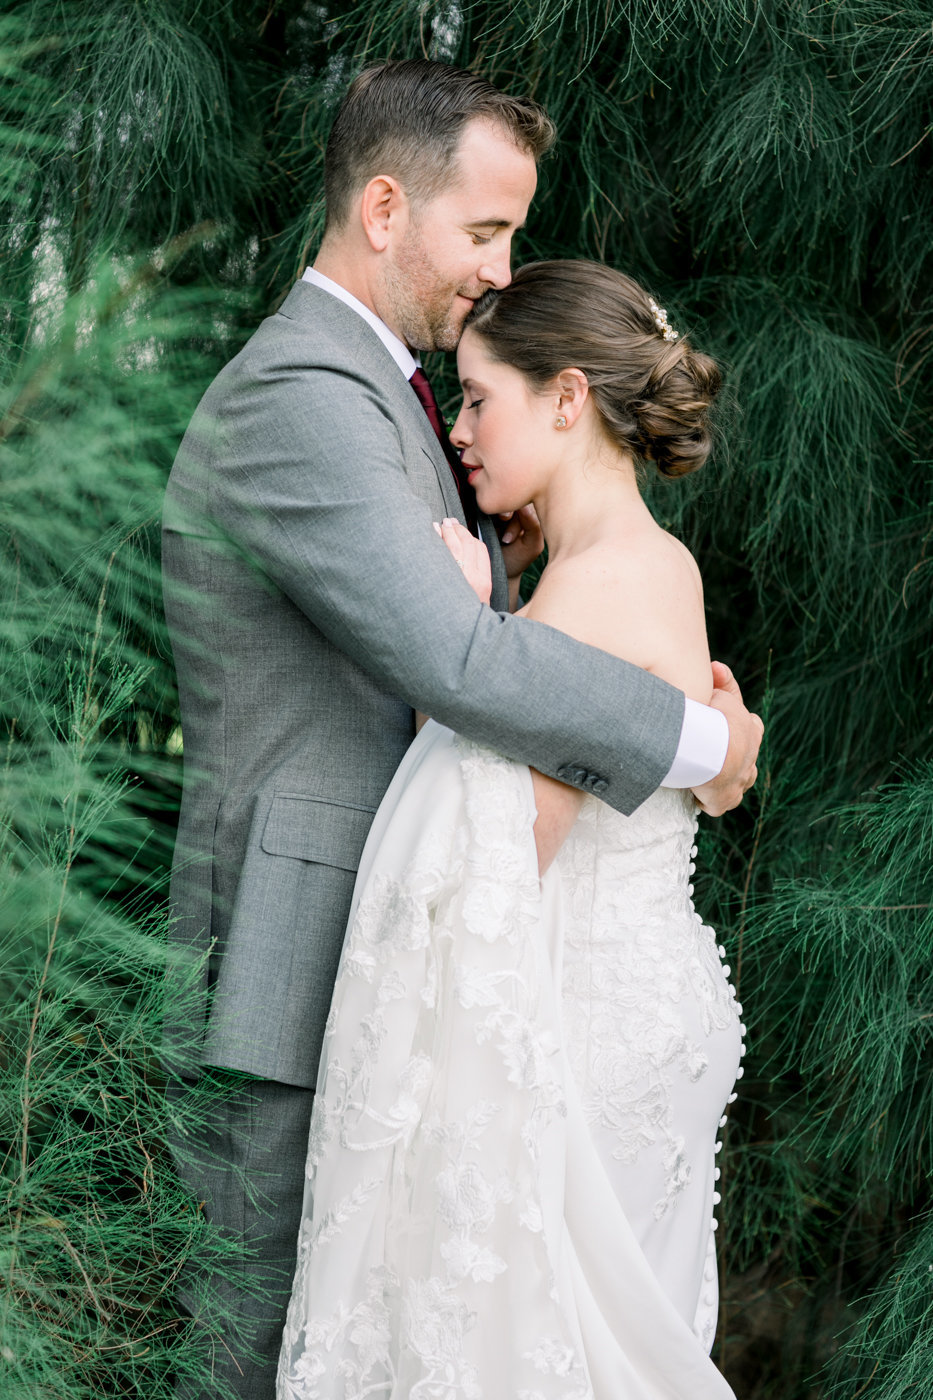 Luxury Fine Art Wedding Photographer- Erica Melissa